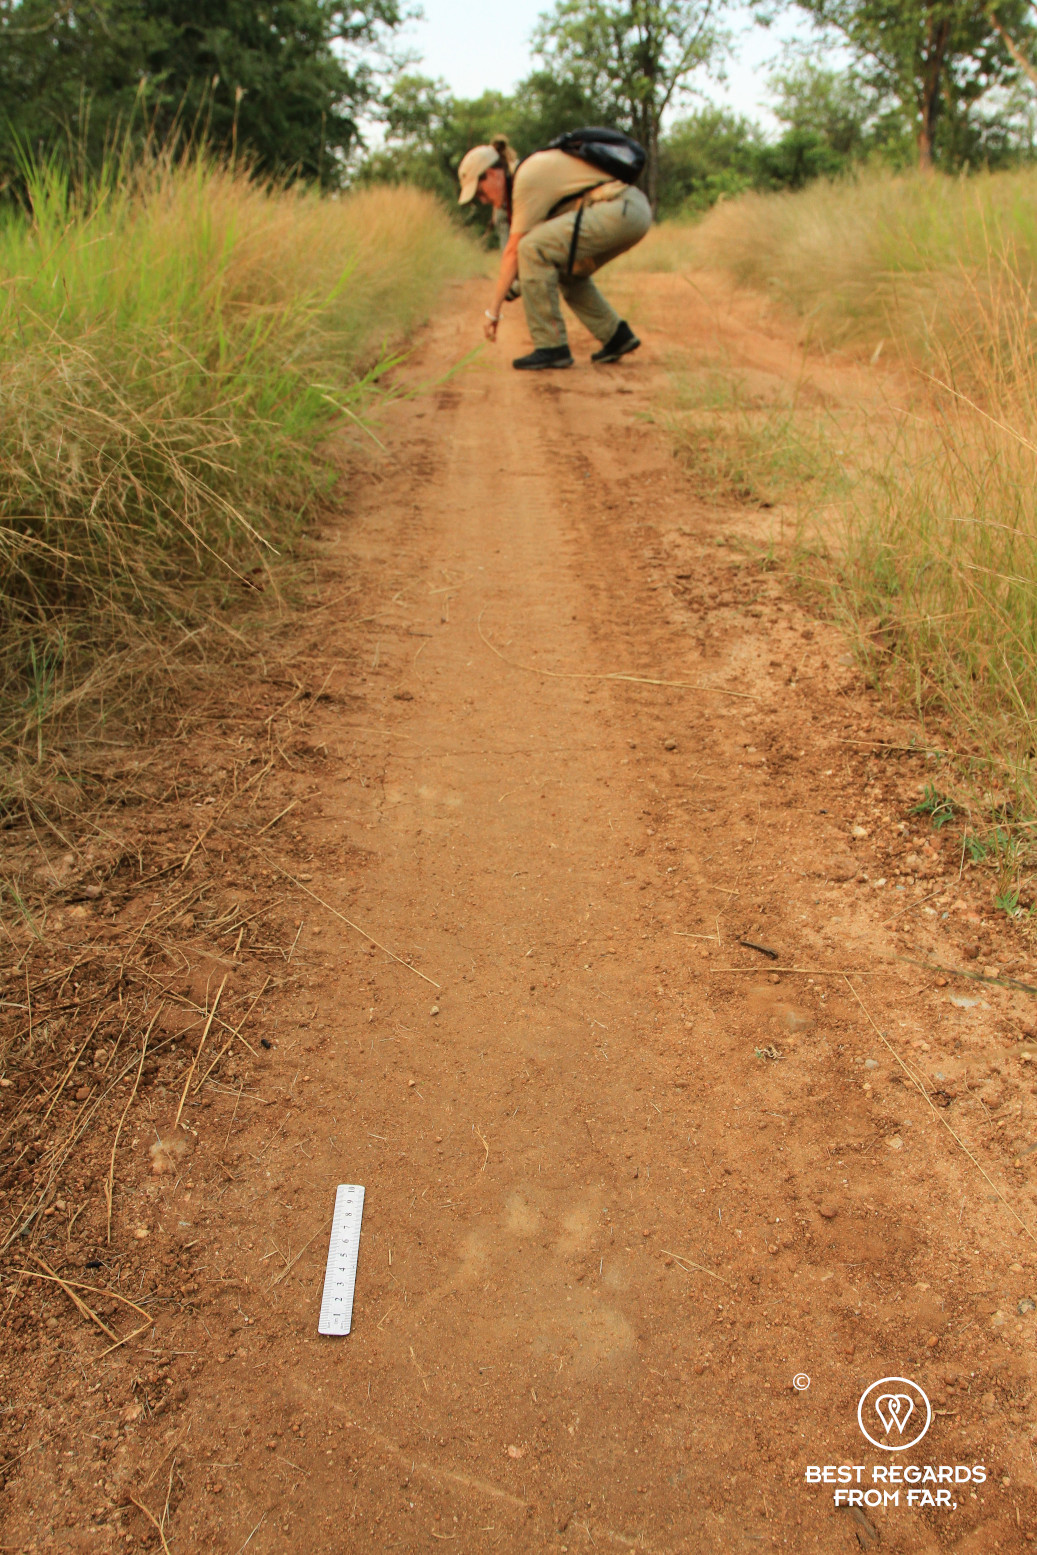 Student studying a lion track in the African bush, with a track and ruler on the foreground